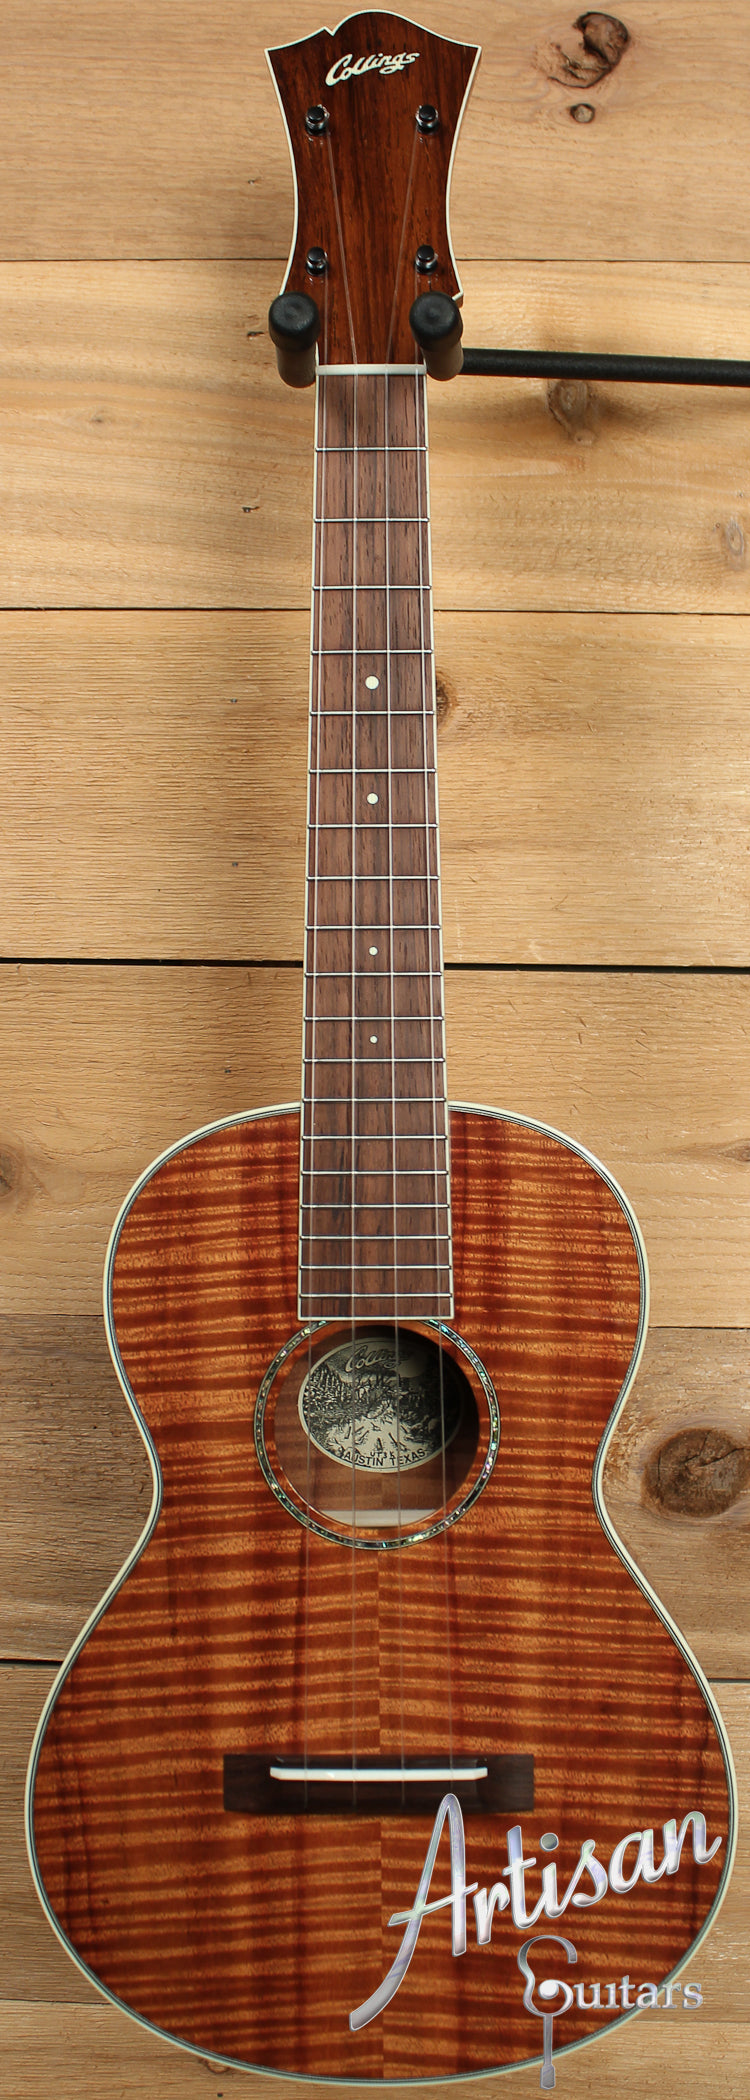 Collings UT3 K Koa Tenor Ukulele ID-7635 - Artisan Guitars